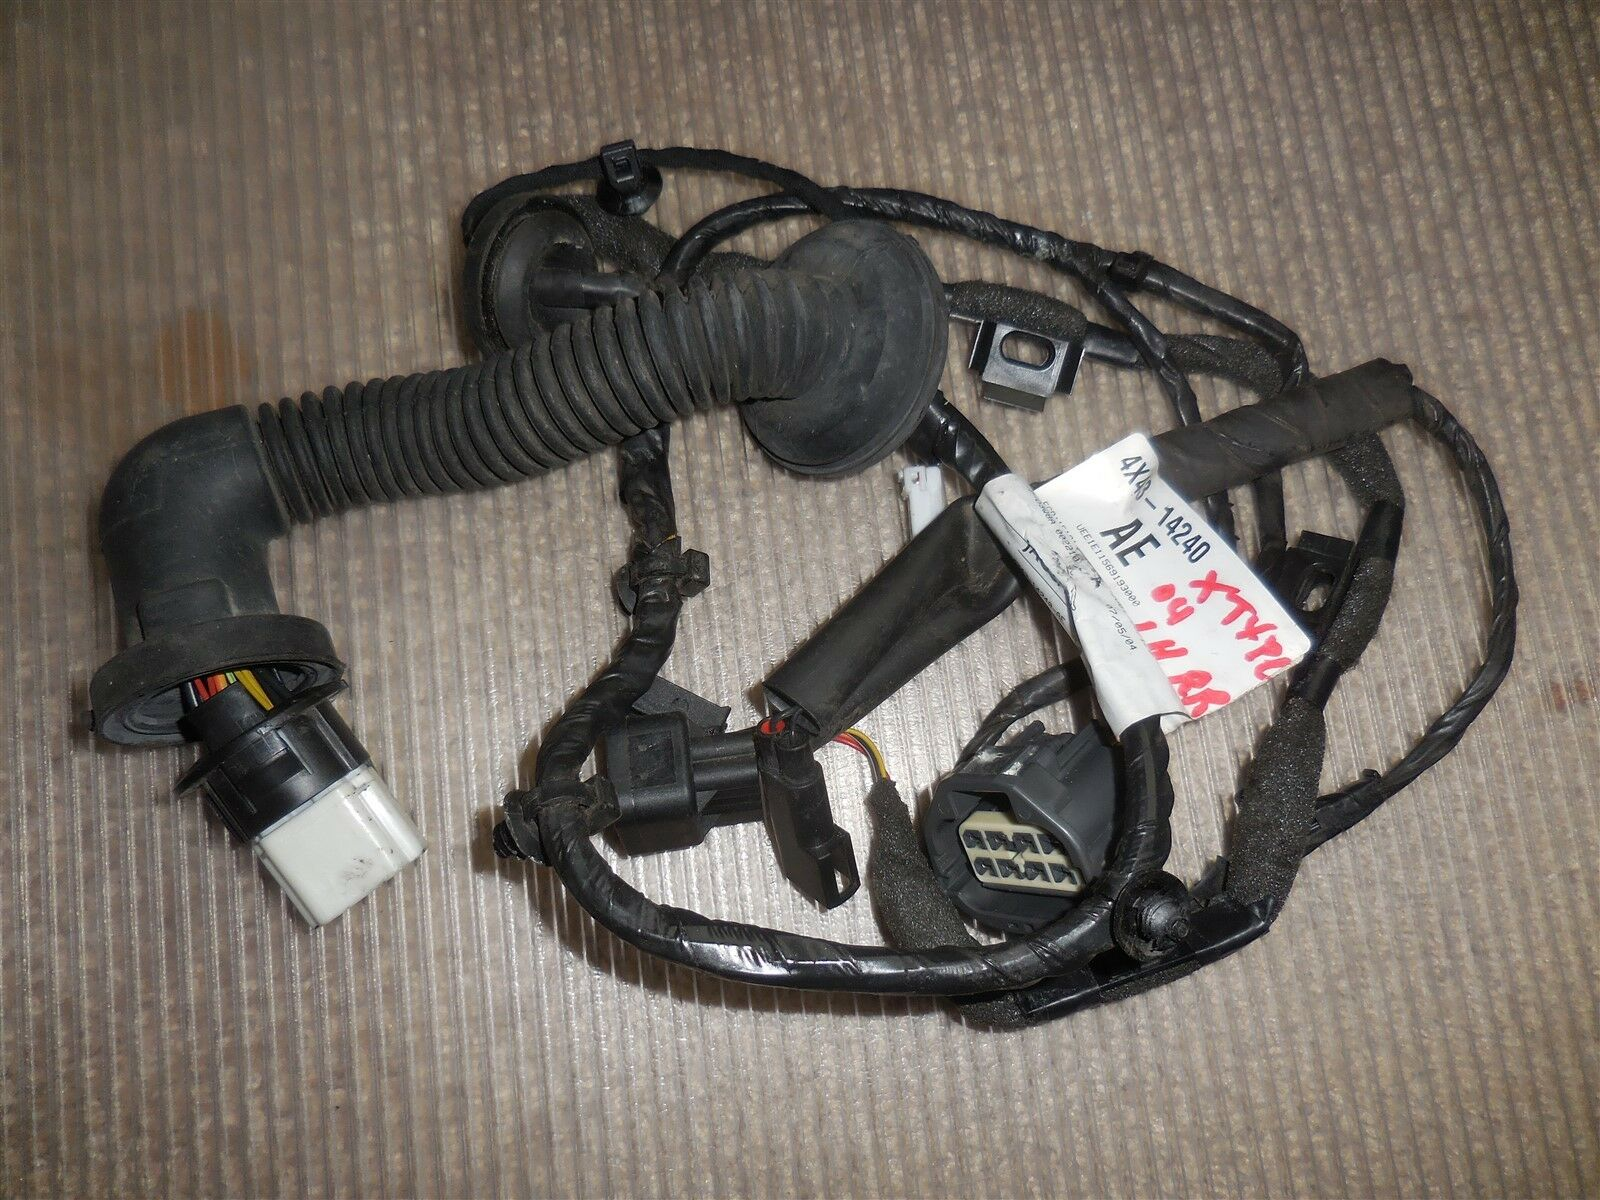 2004 Jaguar X Type Wiring Harness - Wiring Diagram Direct camp-produce -  camp-produce.siciliabeb.itcamp-produce.siciliabeb.it